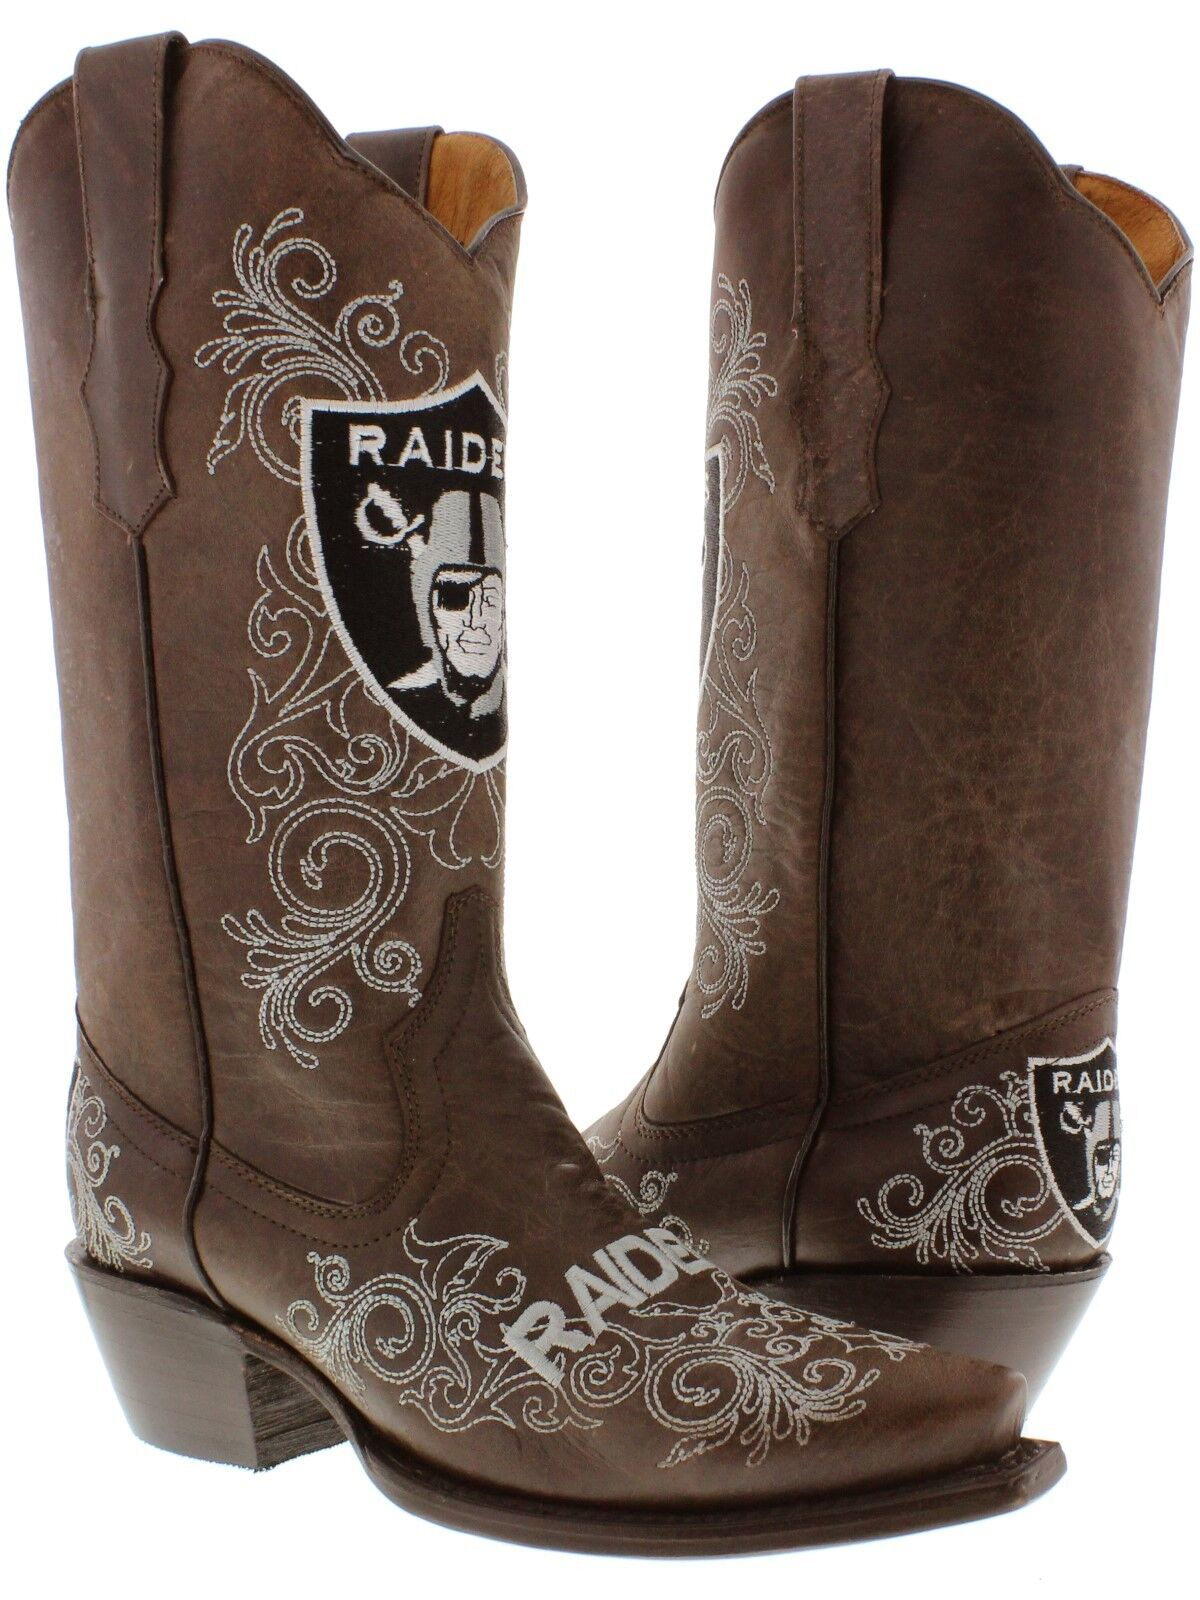 Brown Oakland Raider Rodeo Riding Boots Leather Cowboy Boots Riding Western Snip Toe new c88237